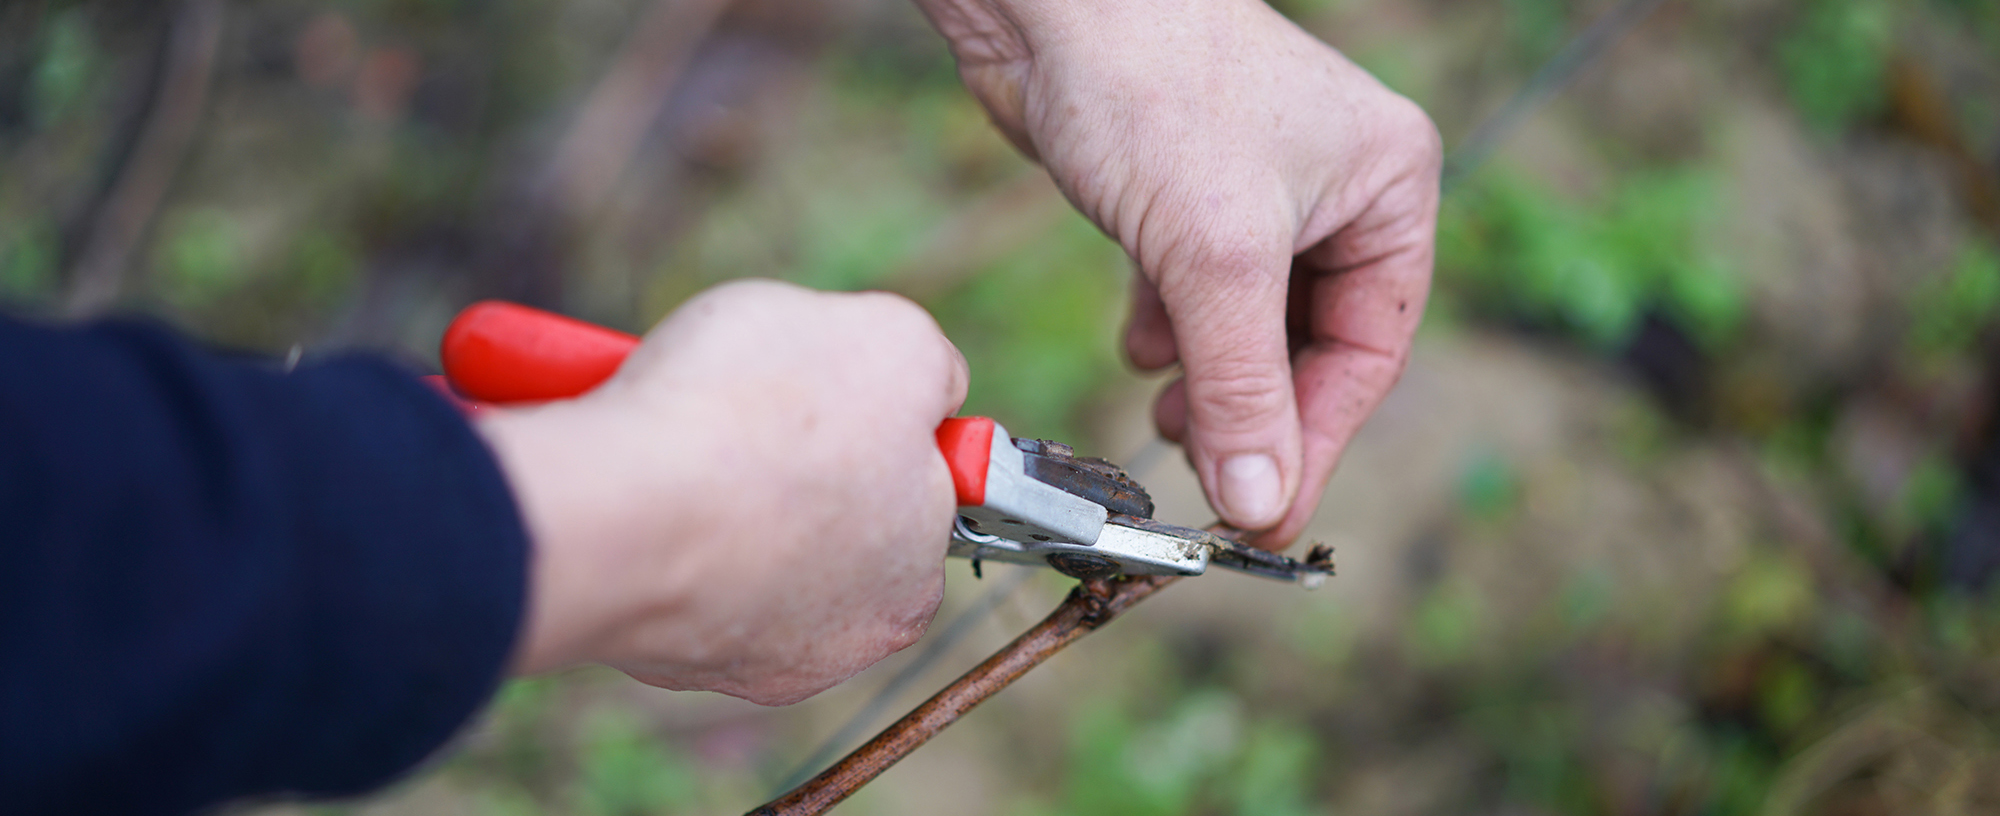 The secrets of pruning revealed